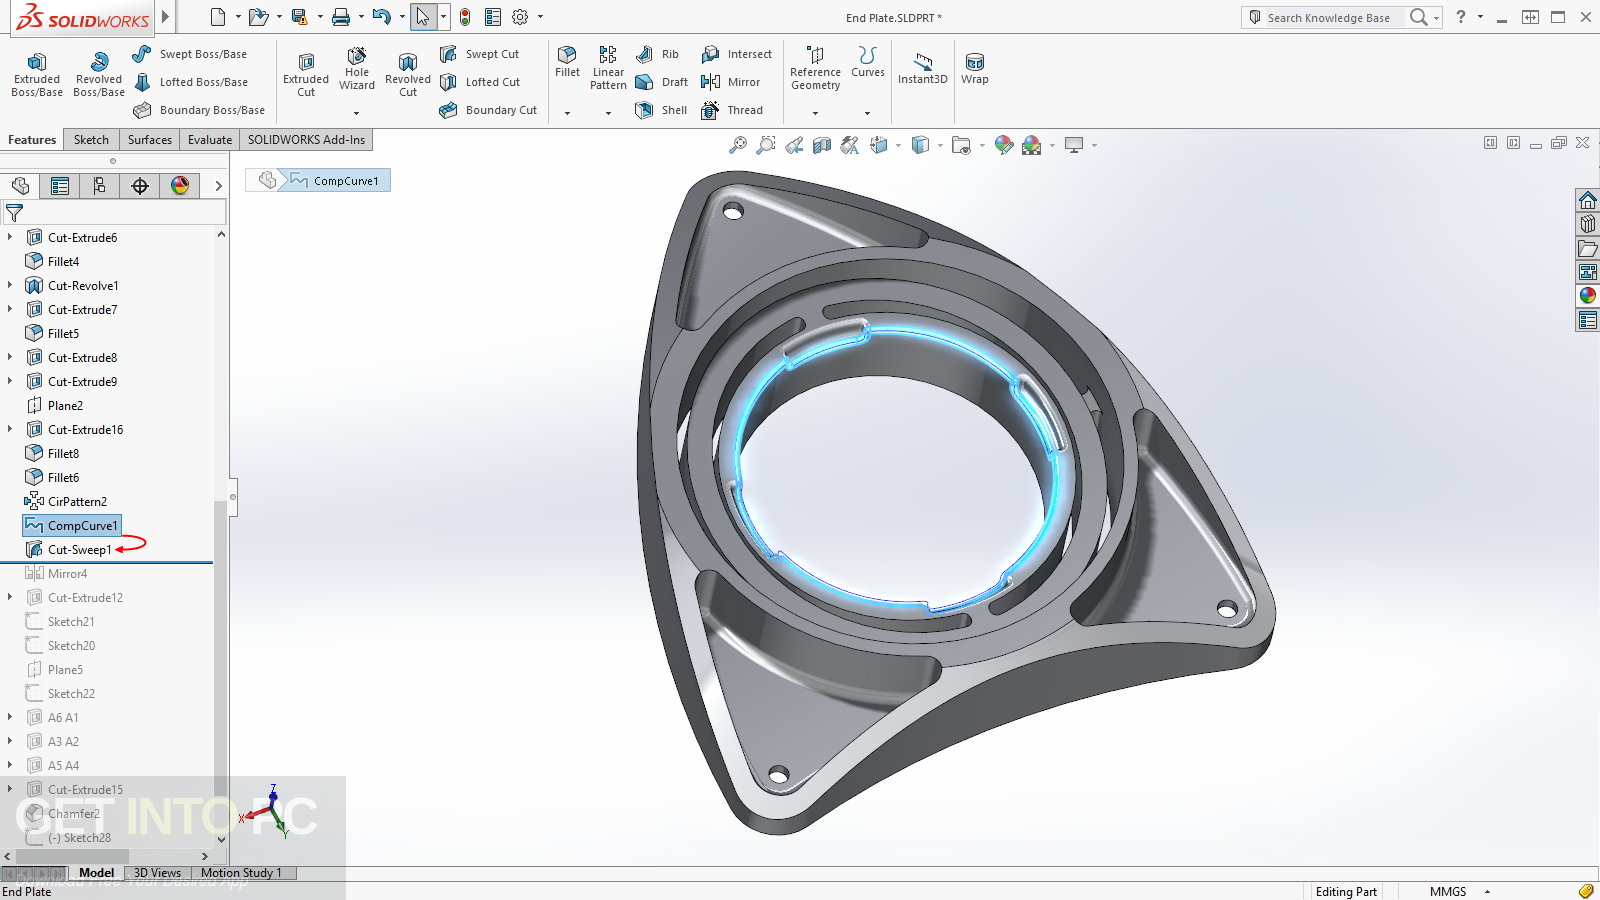 solidworks software free download full version